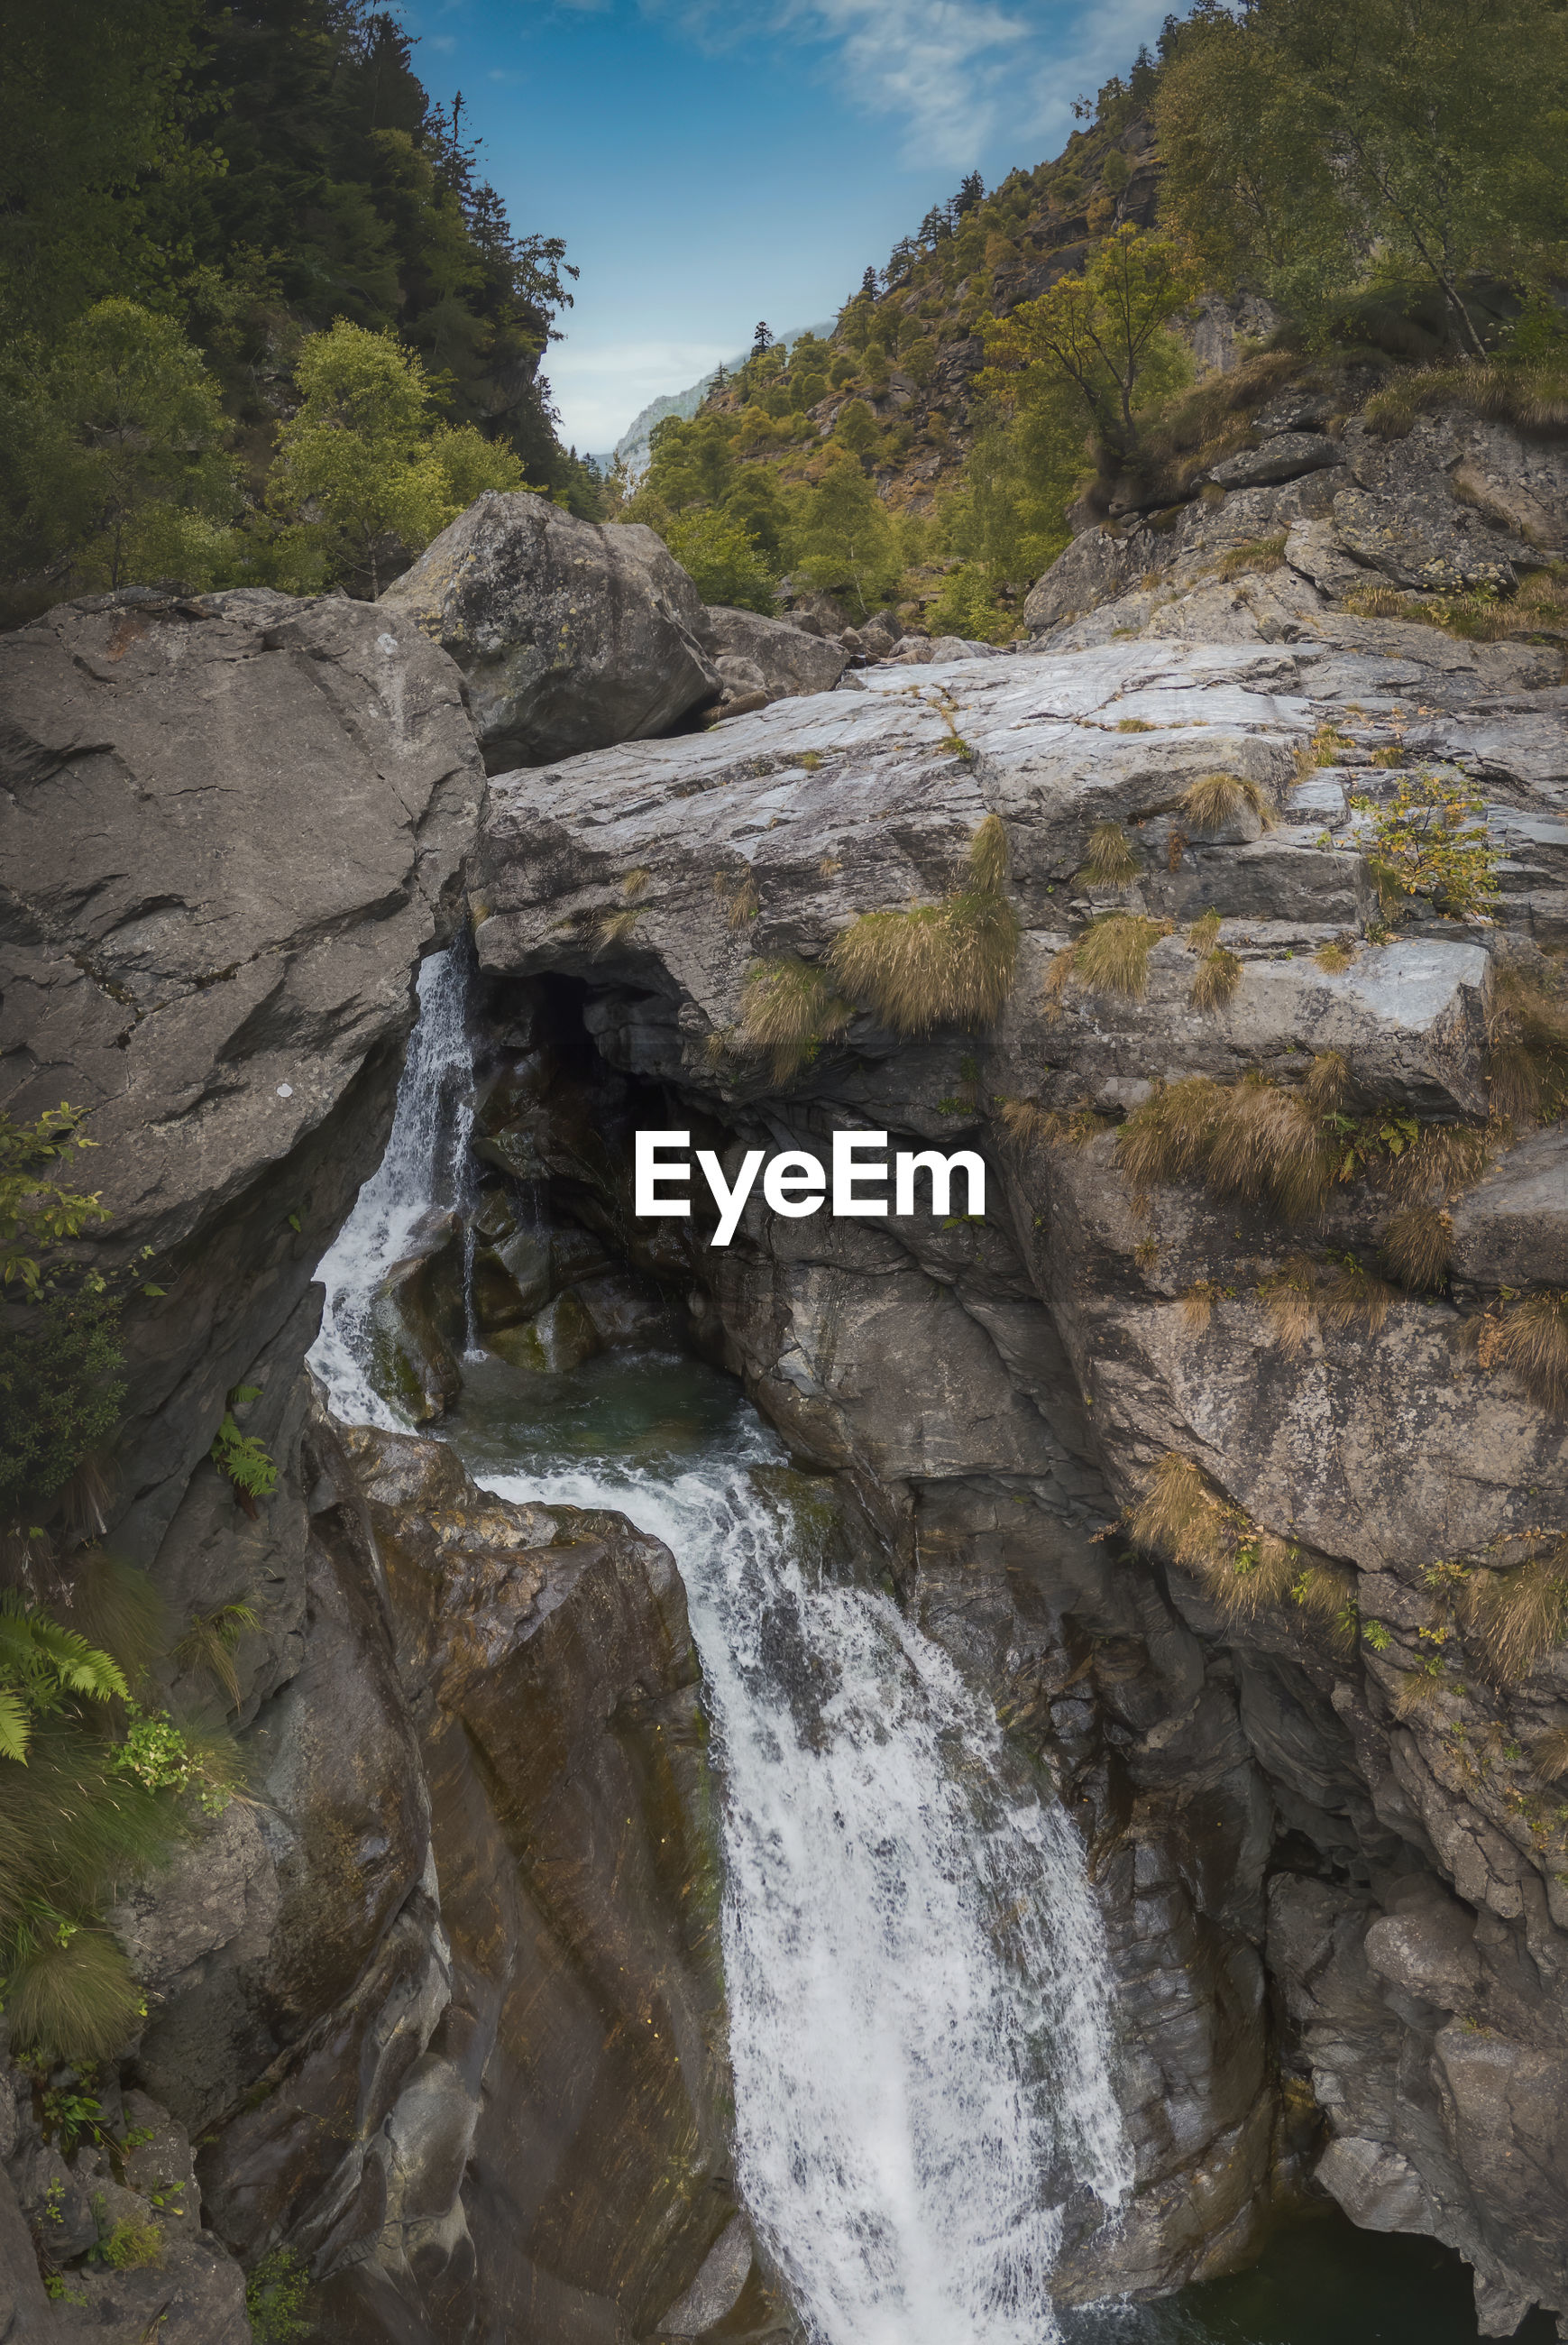 SCENIC VIEW OF WATERFALL ON ROCK FORMATION